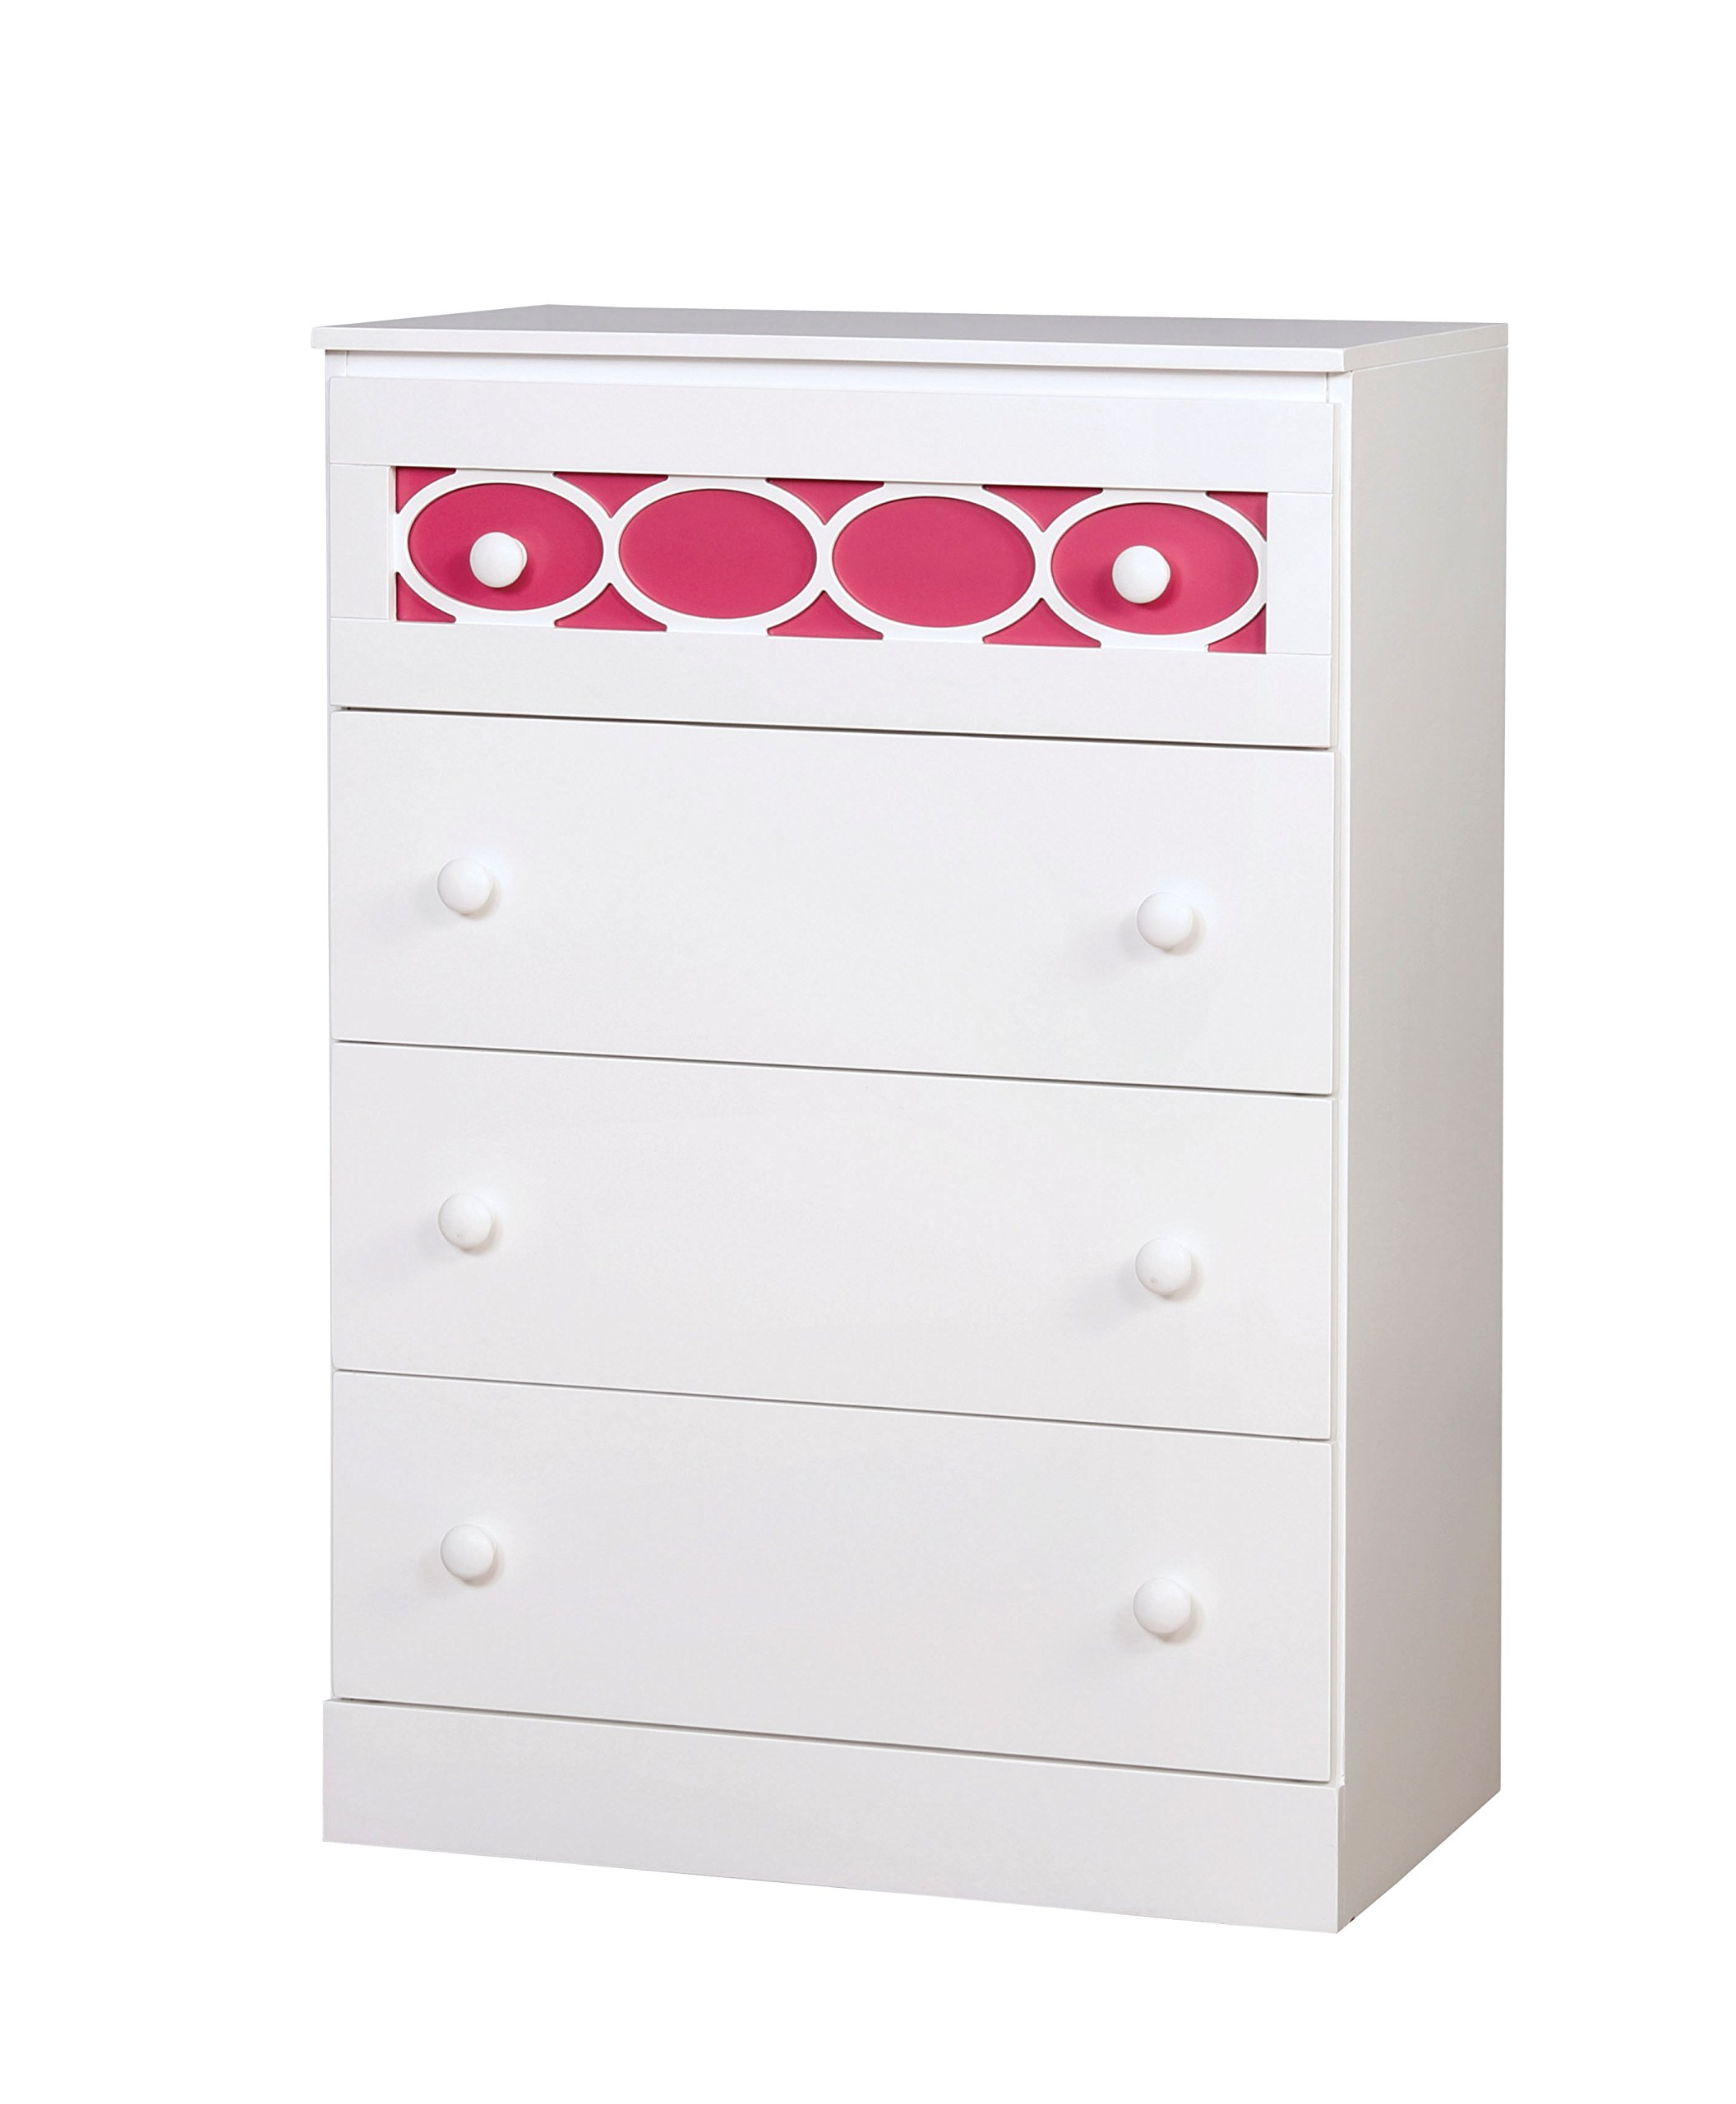 HOMES: Inside + Out IDF-7853PK-C Roka Chest Contemporary, Pink by HOMES: Inside + Out